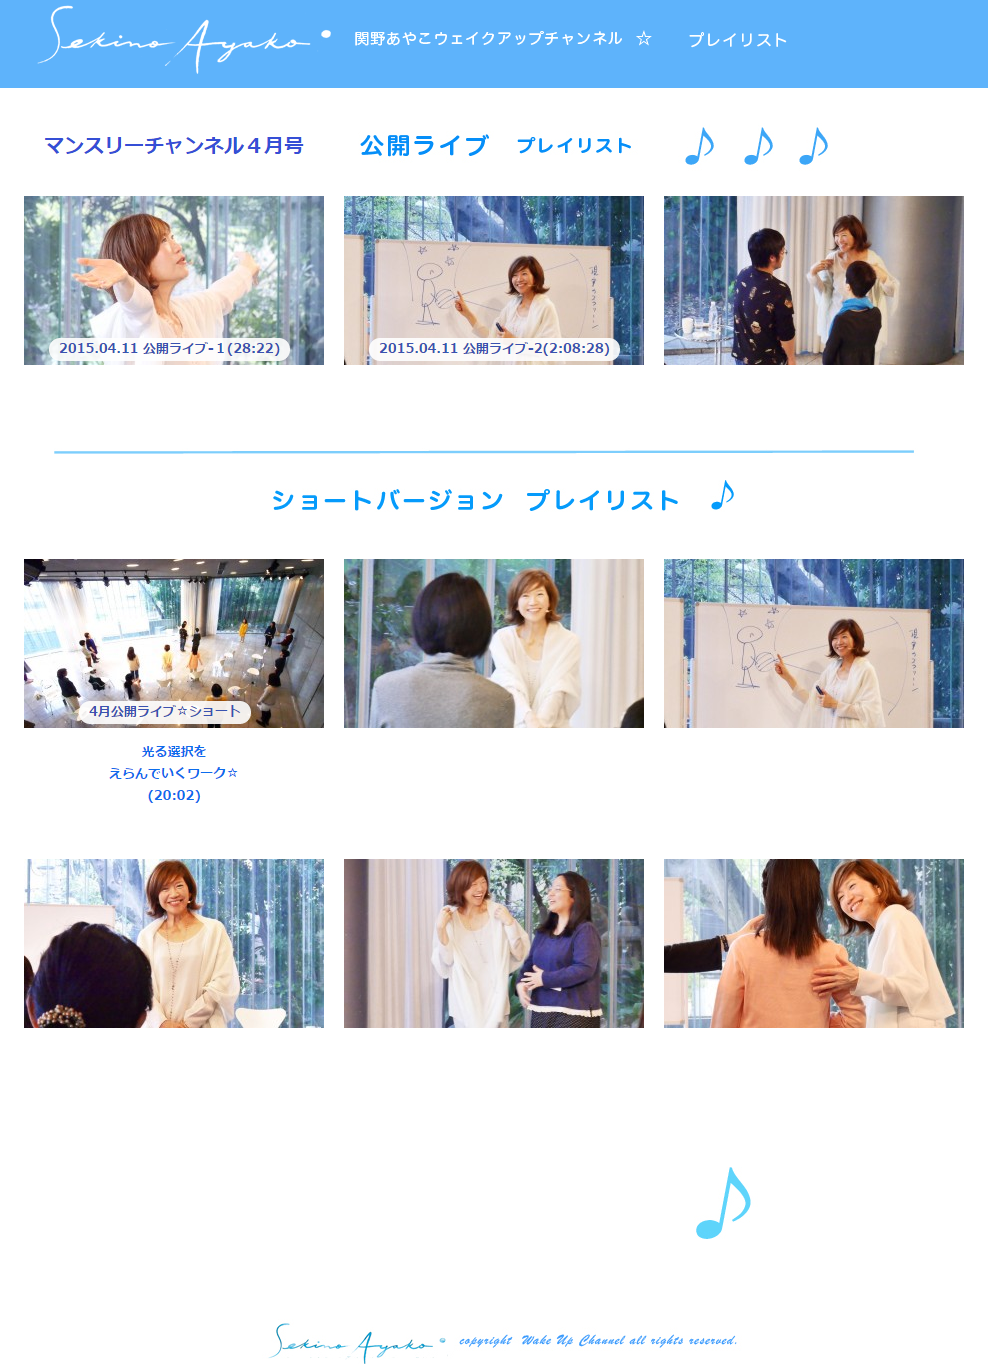 screencapture-sekinoayako-com-playlist-monthly-2015-04ux42p-1428926531139